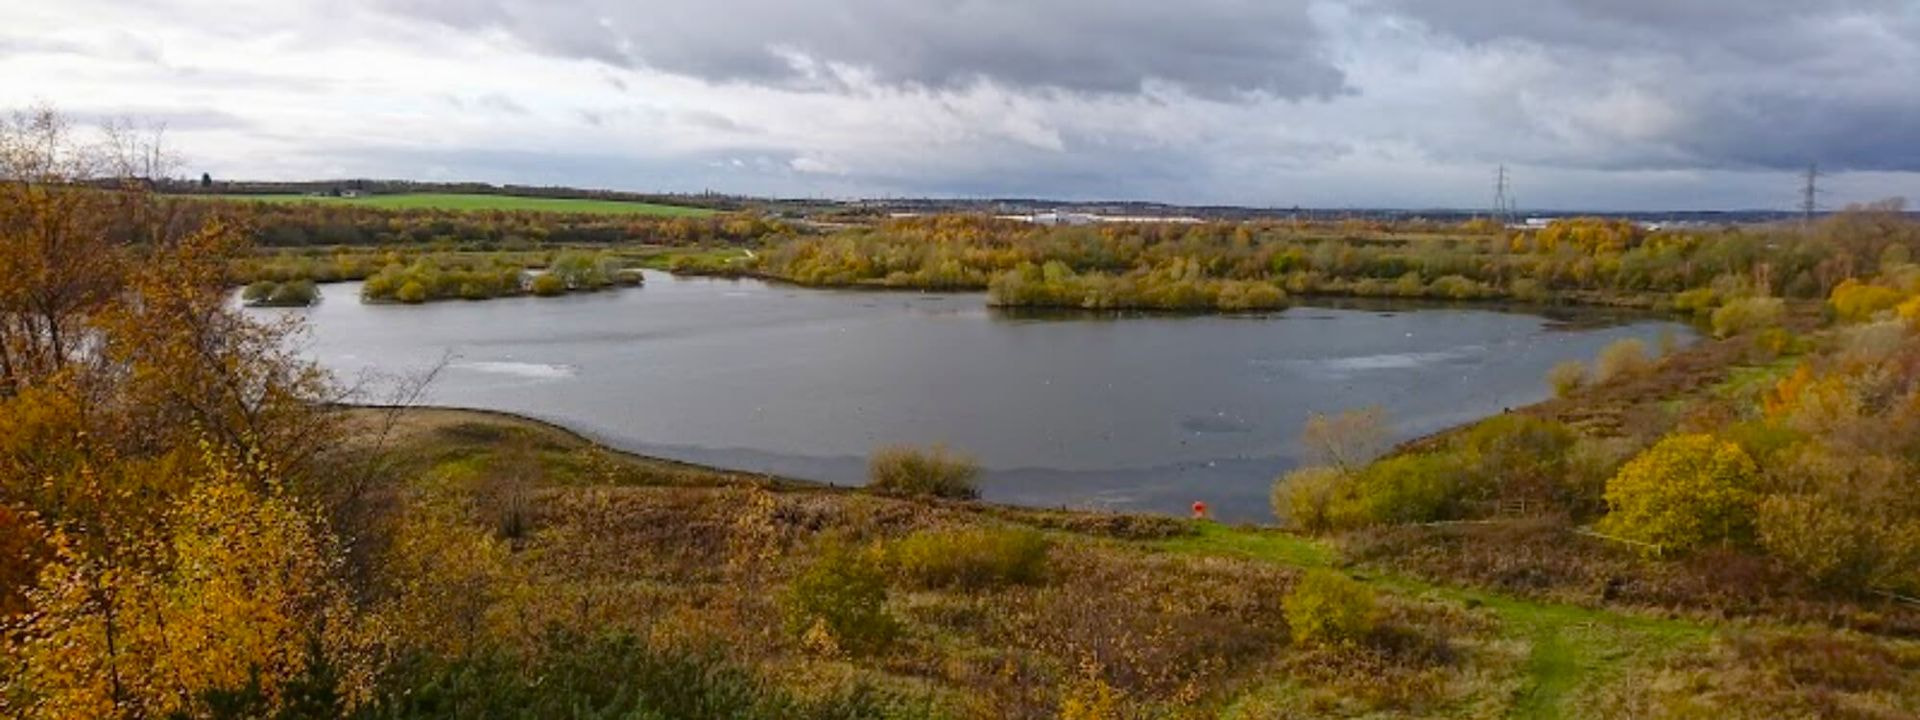 Skelton Country Park